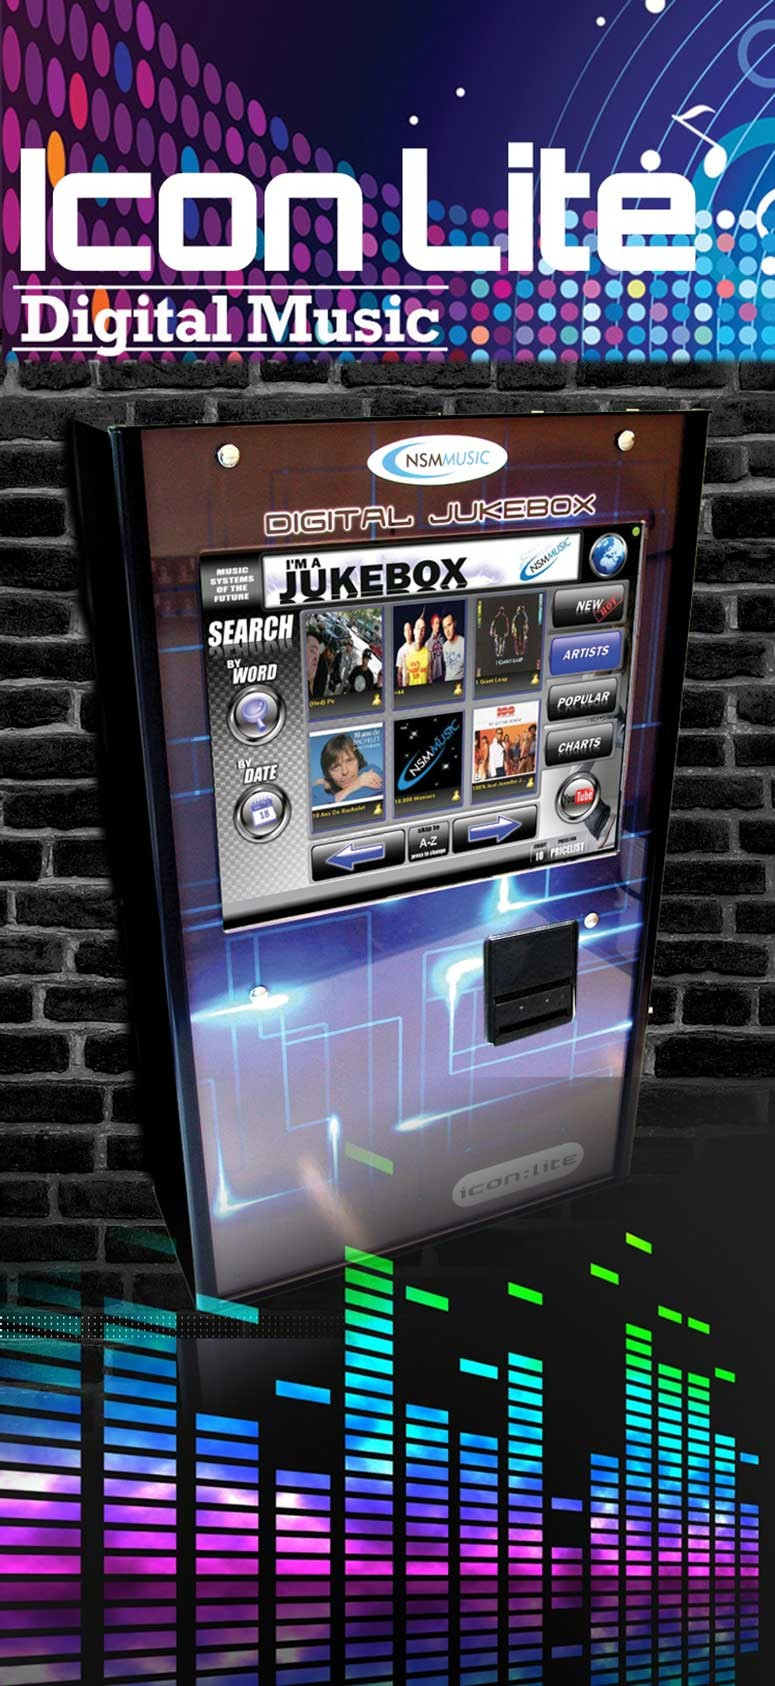 Digital_Jukebox